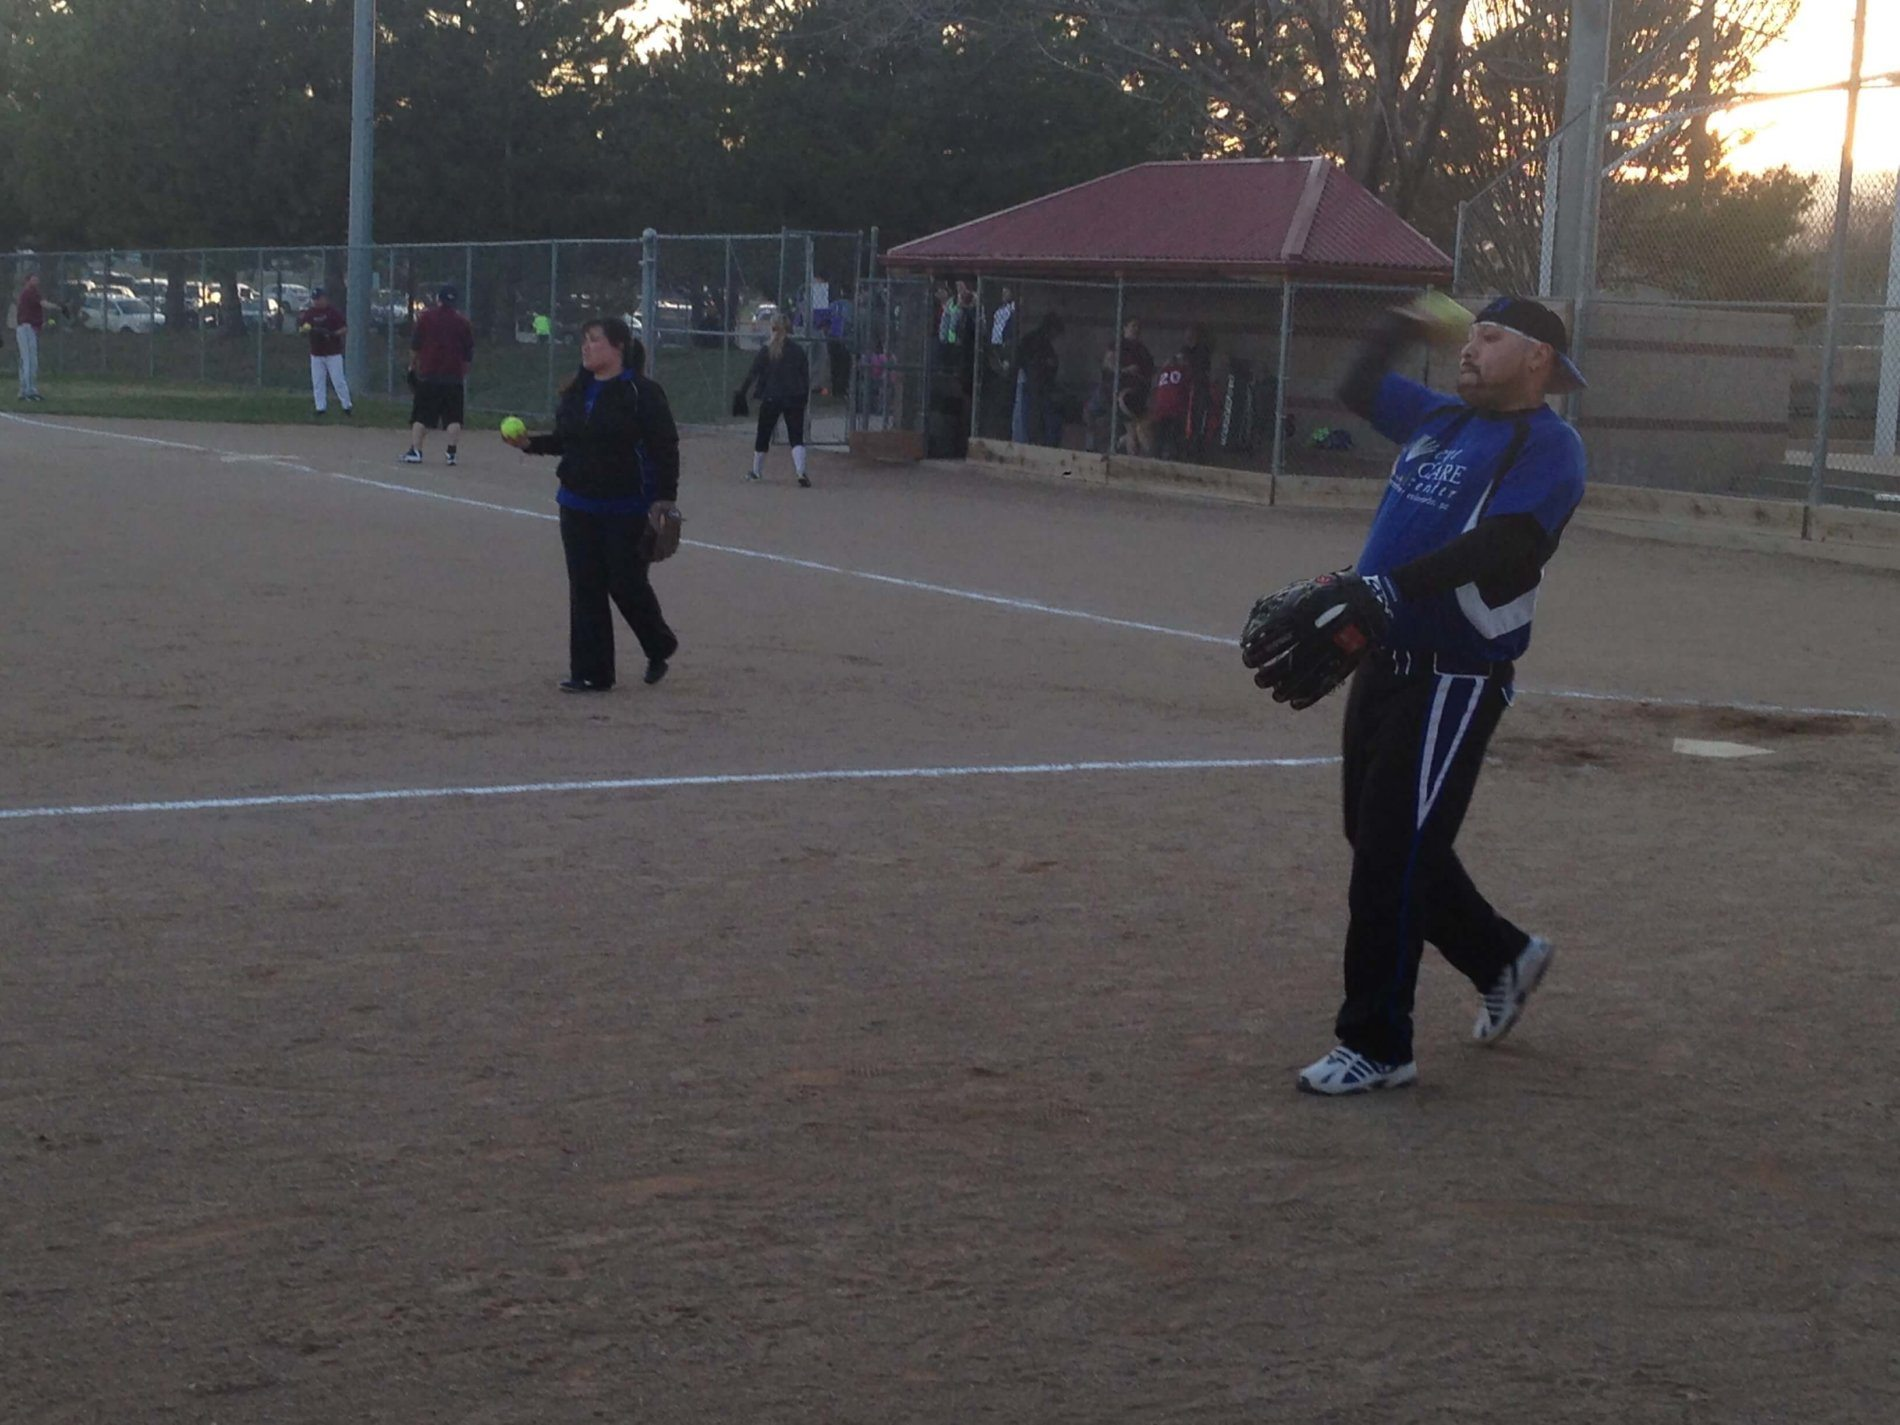 Team ECCNC Spring Softball Weekly Update!